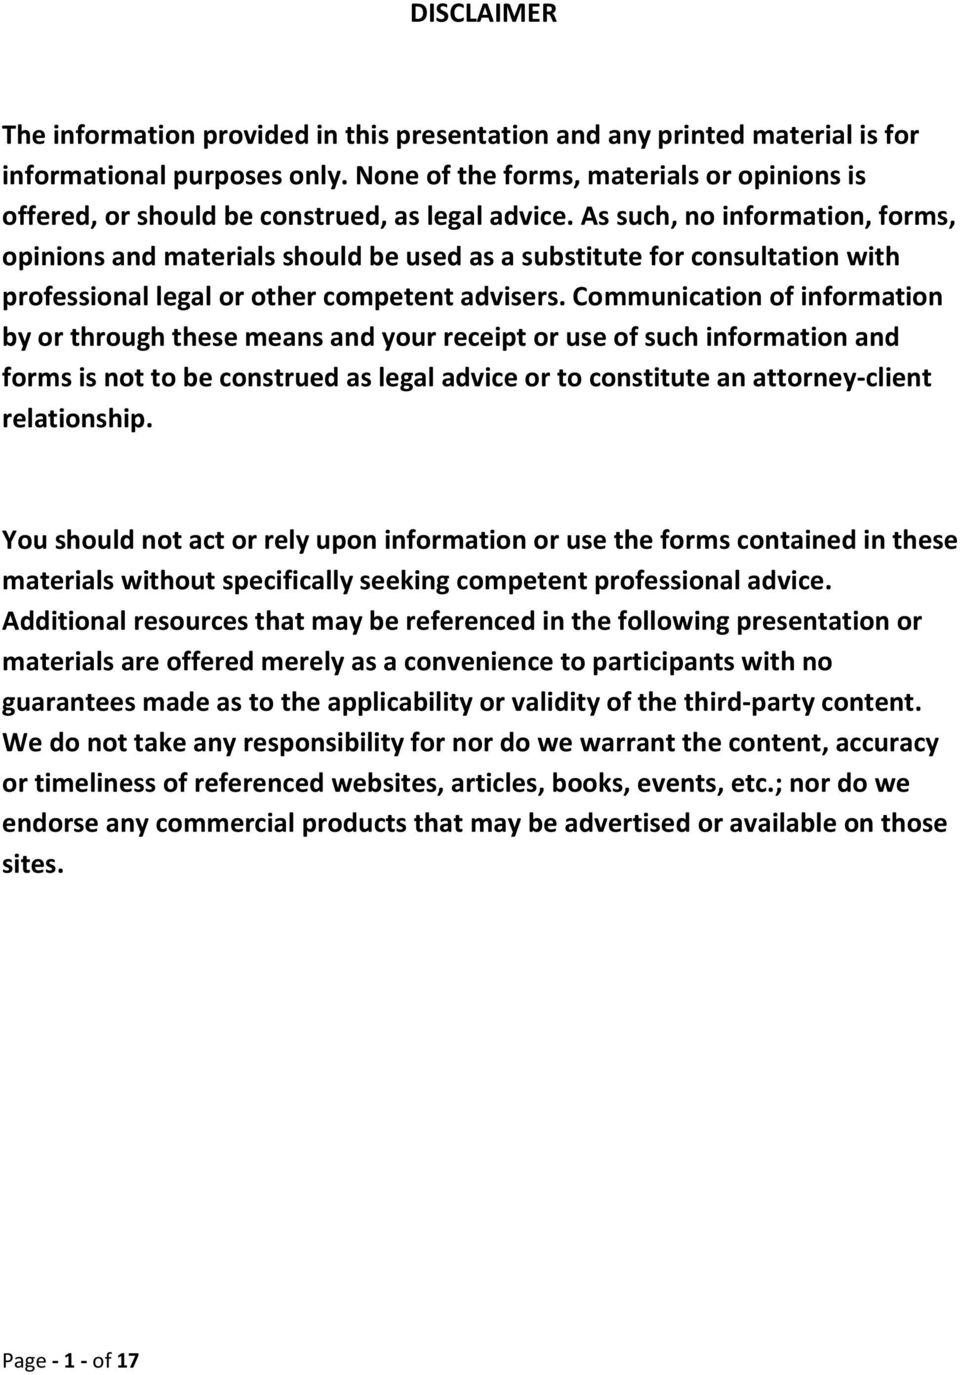 As such, no information, forms, opinions and materials should be used as a substitute for consultation with professional legal or other competent advisers.